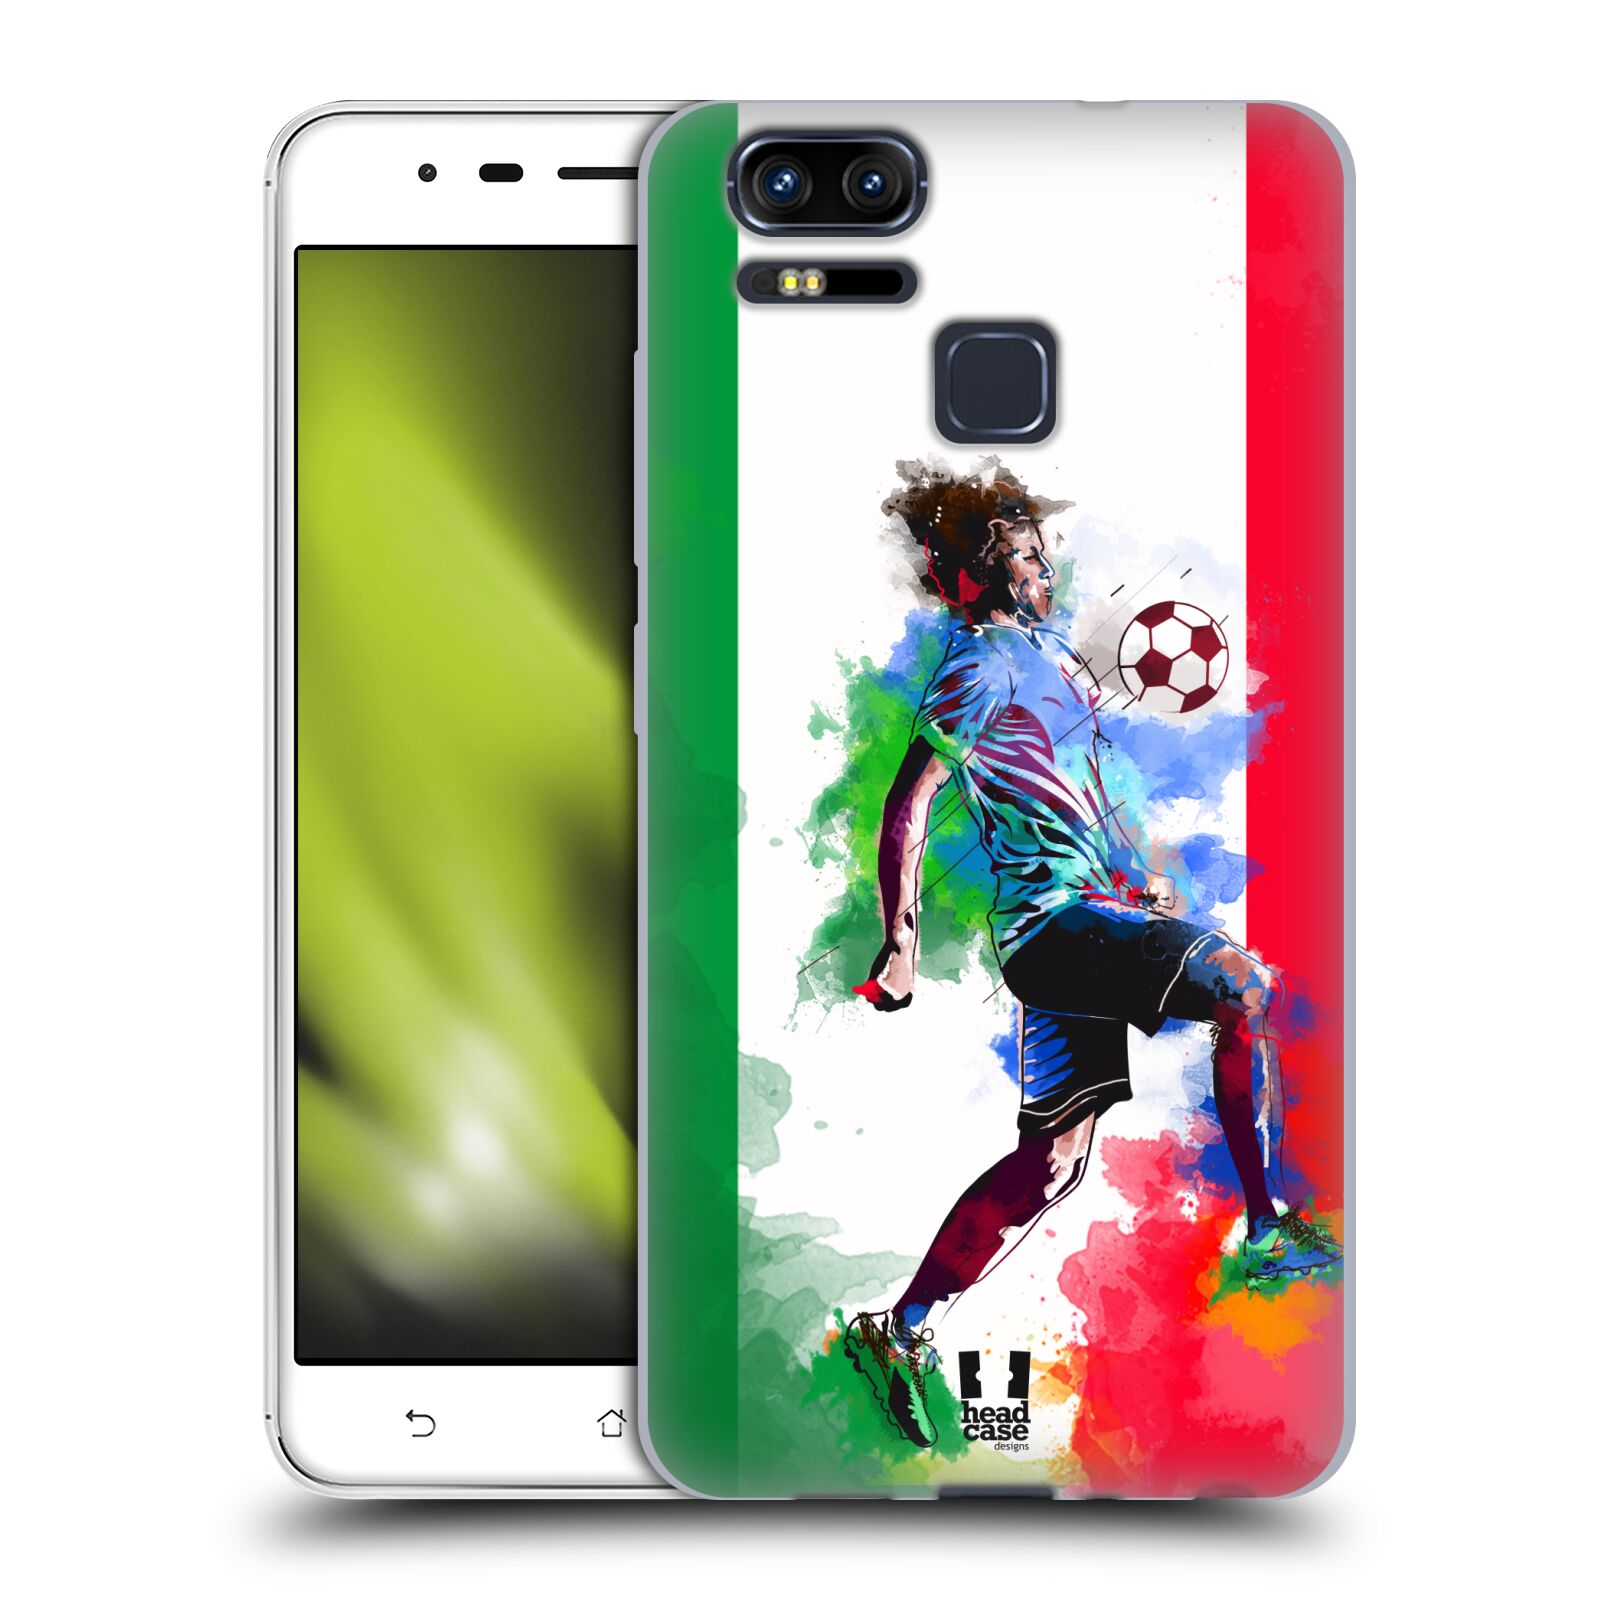 HEAD-CASE-DESIGNS-FOOTBALL-SPLASH-SOFT-GEL-CASE-FOR-ASUS-ZENFONE-3-ZOOM-ZE553KL